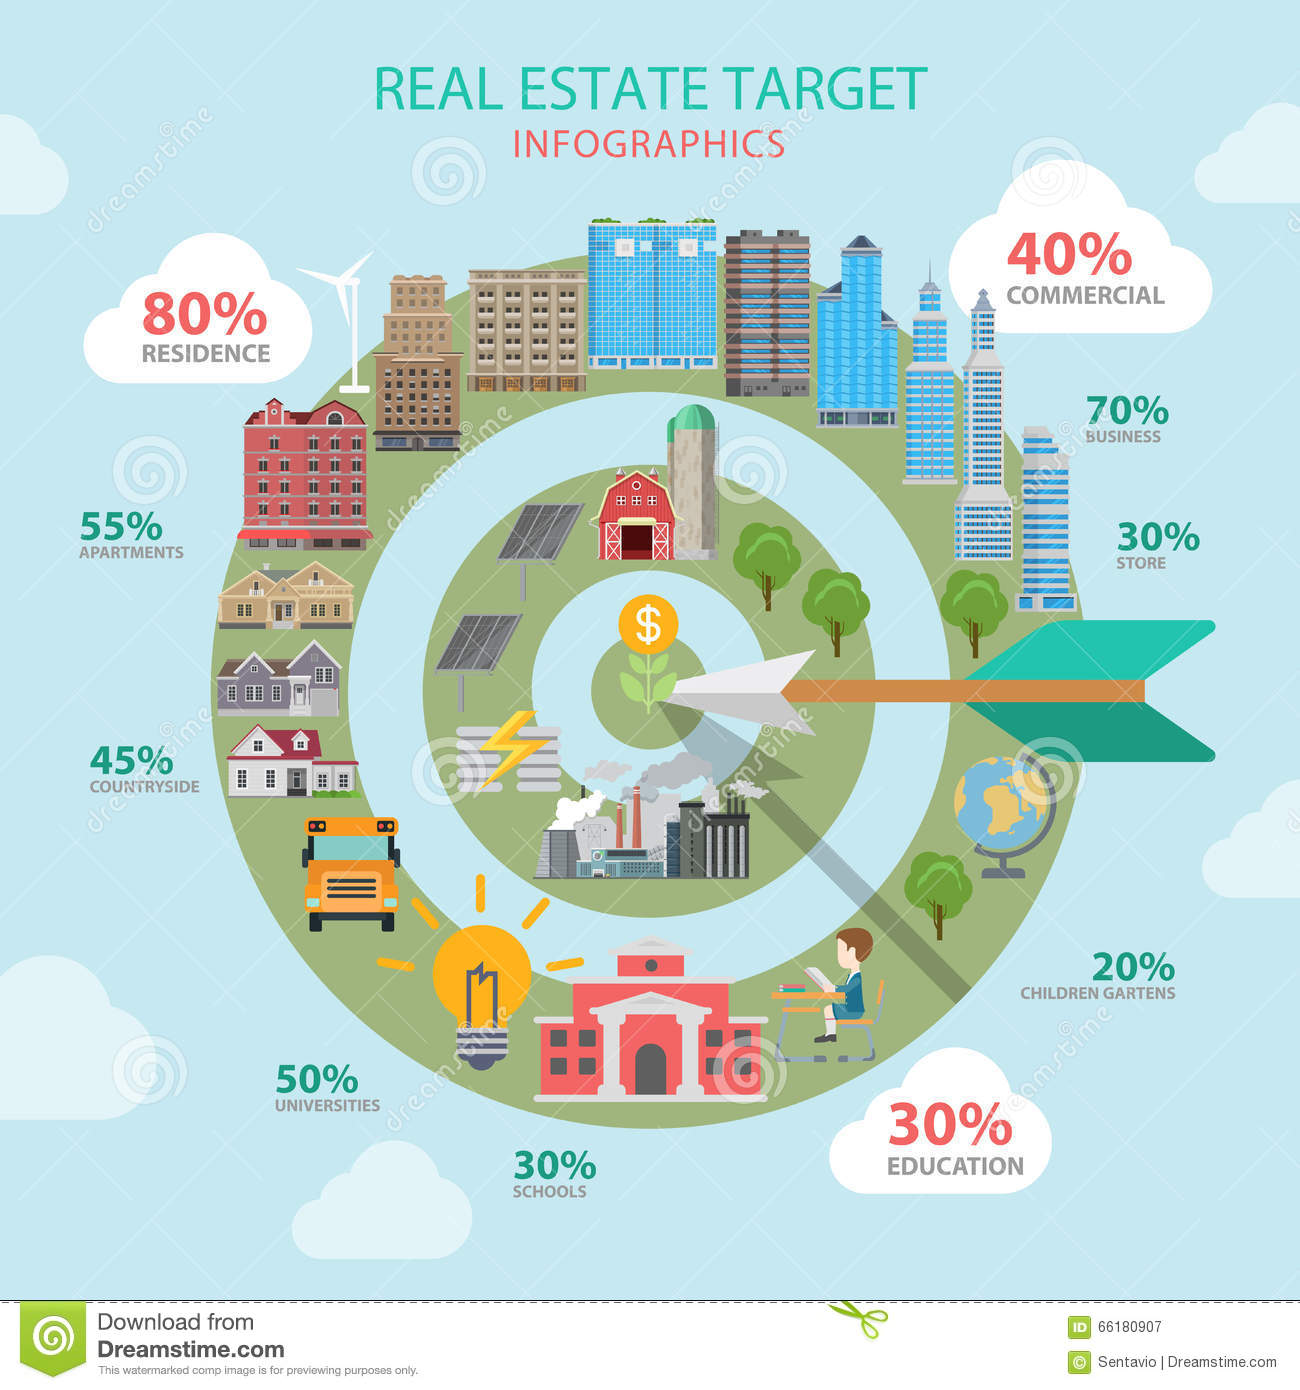 Commercial Property Information : Real estate target flat vector infographics education